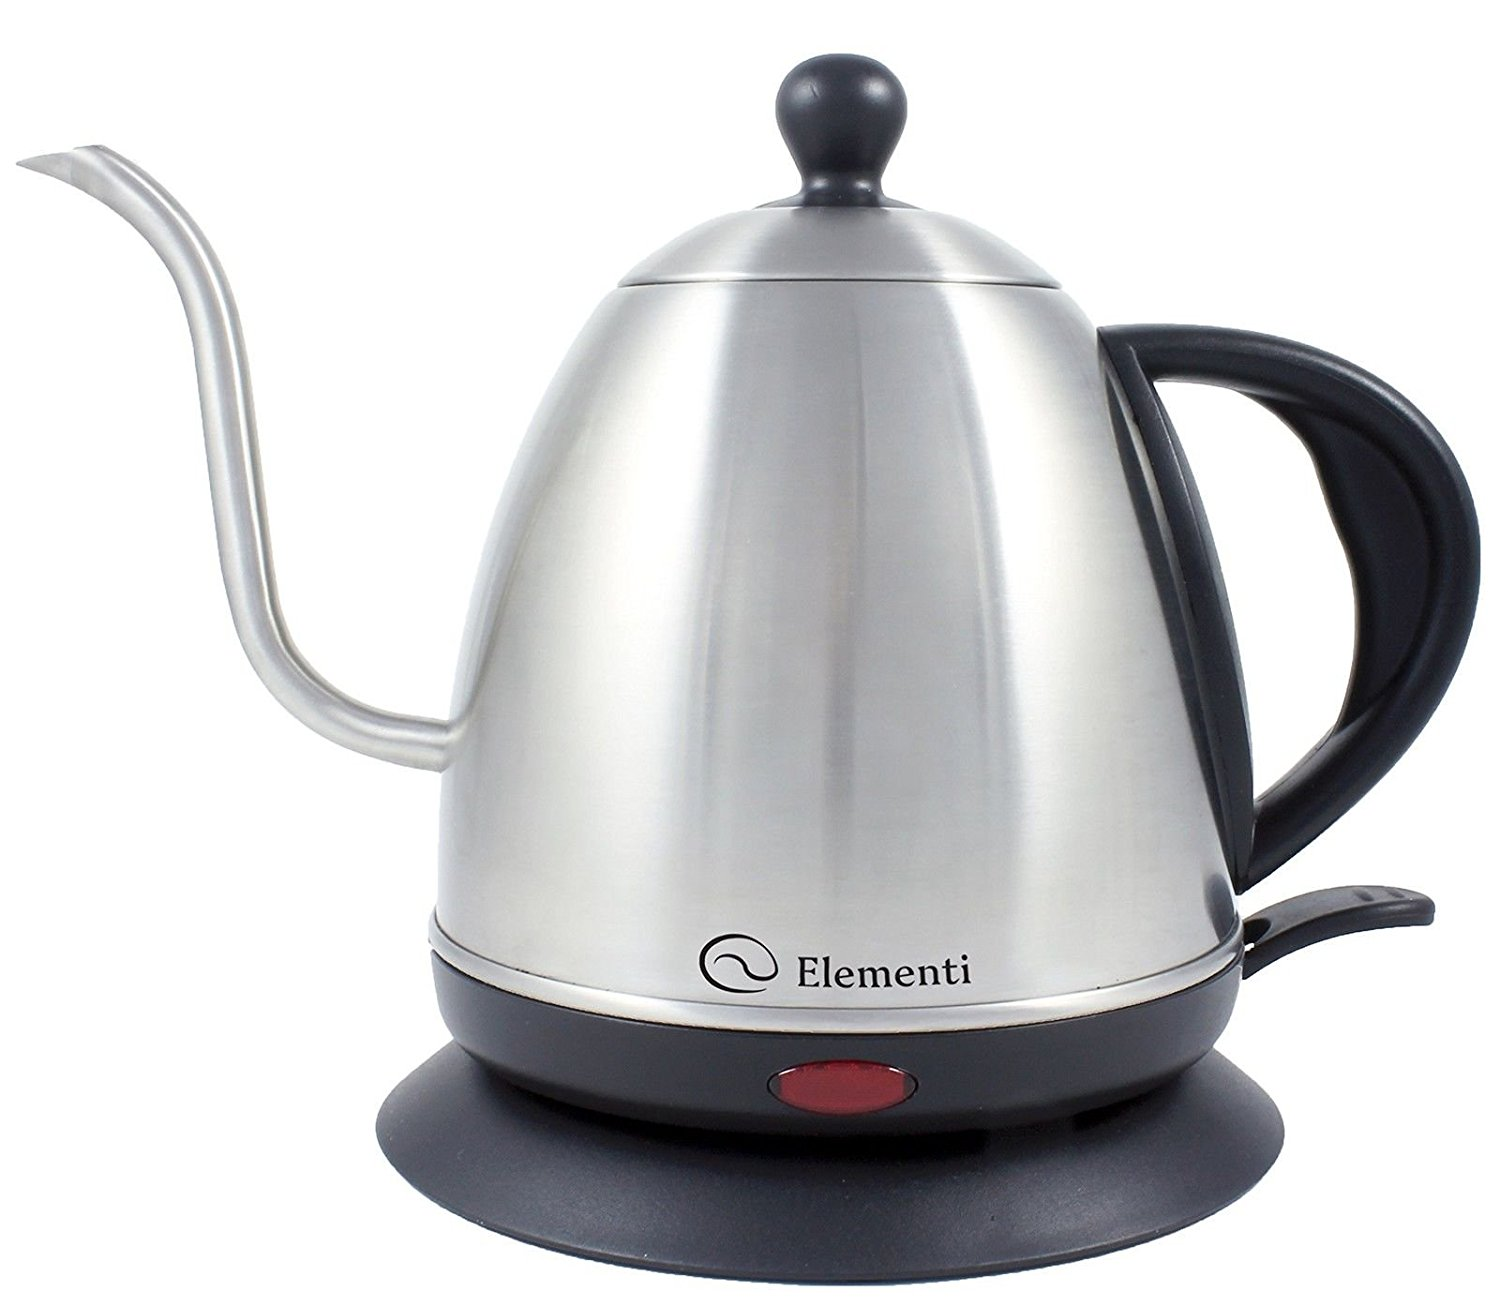 Amazon.com: Elementi Premier Electric Gooseneck Kettle for Pour Over ...